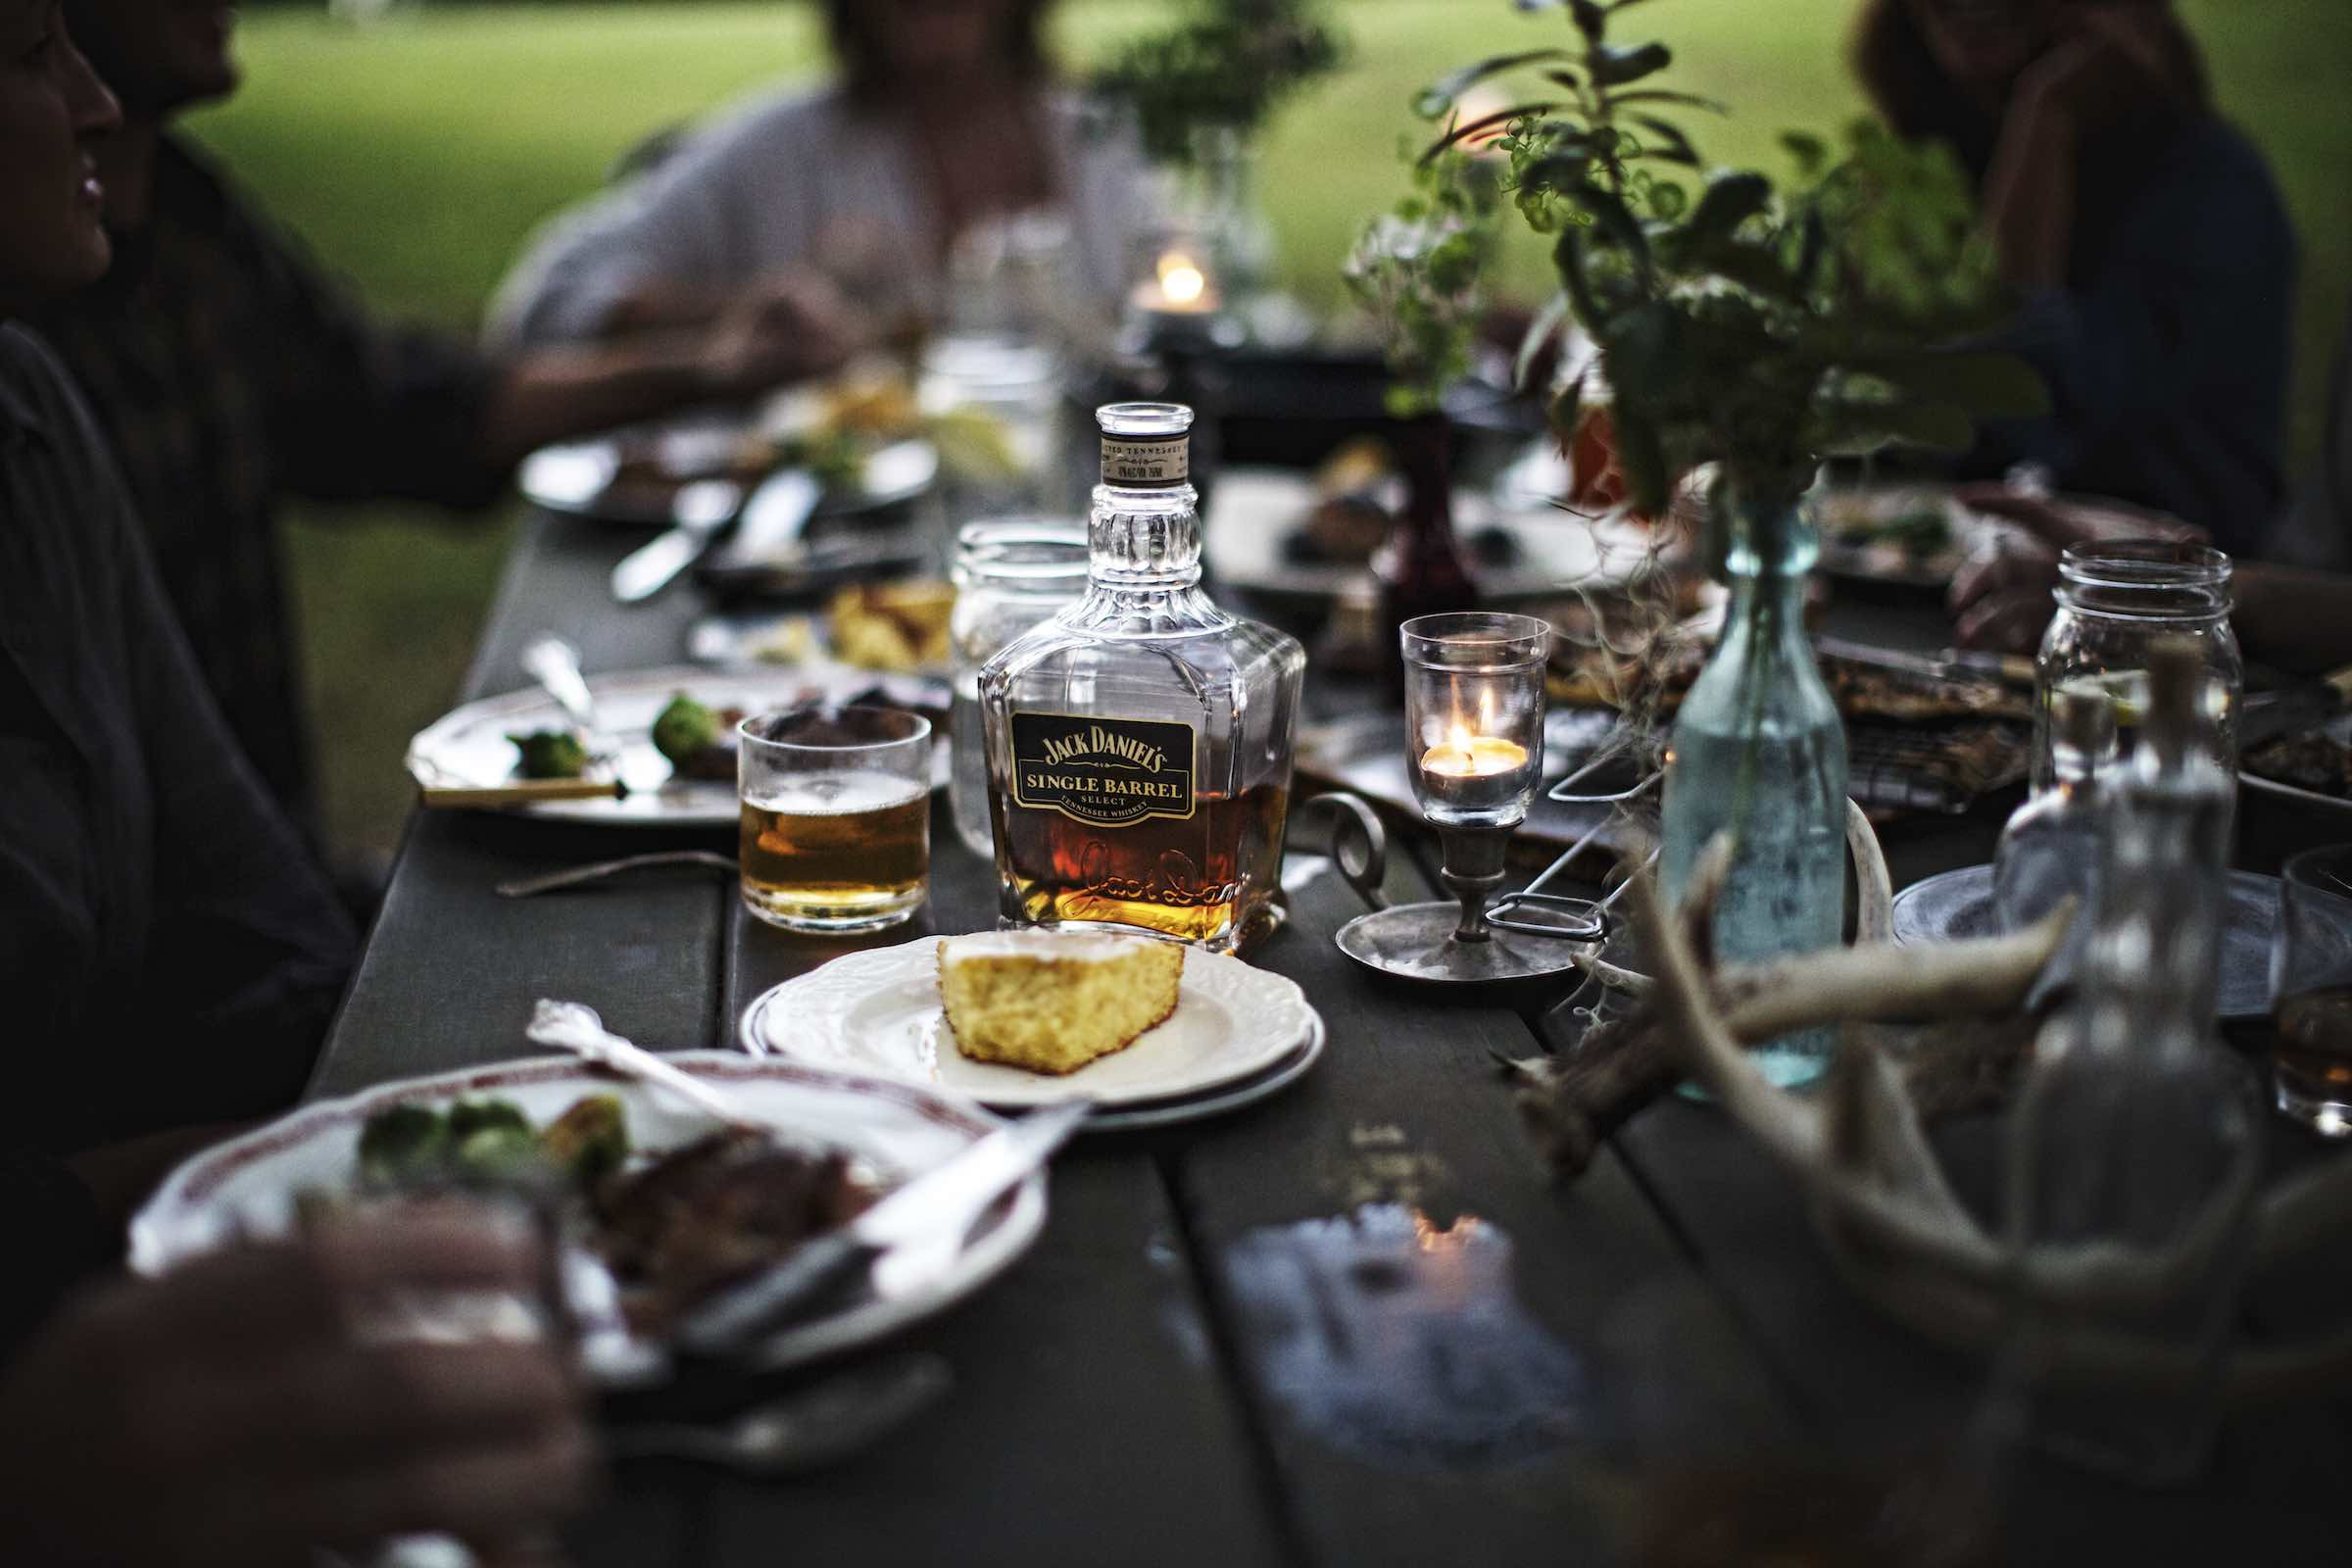 Candlelit dinner scene with Jack Daniel